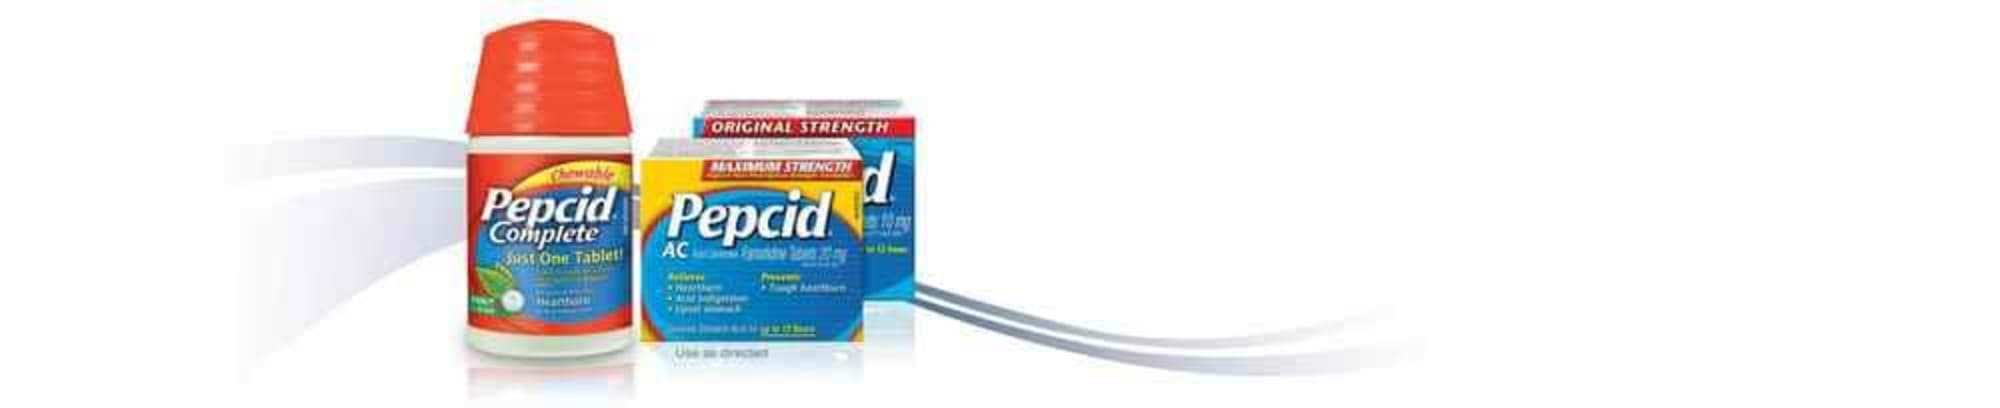 Pepcid Complete, Pepcid AC Maximum Strength and Pepcid AC Original Strength